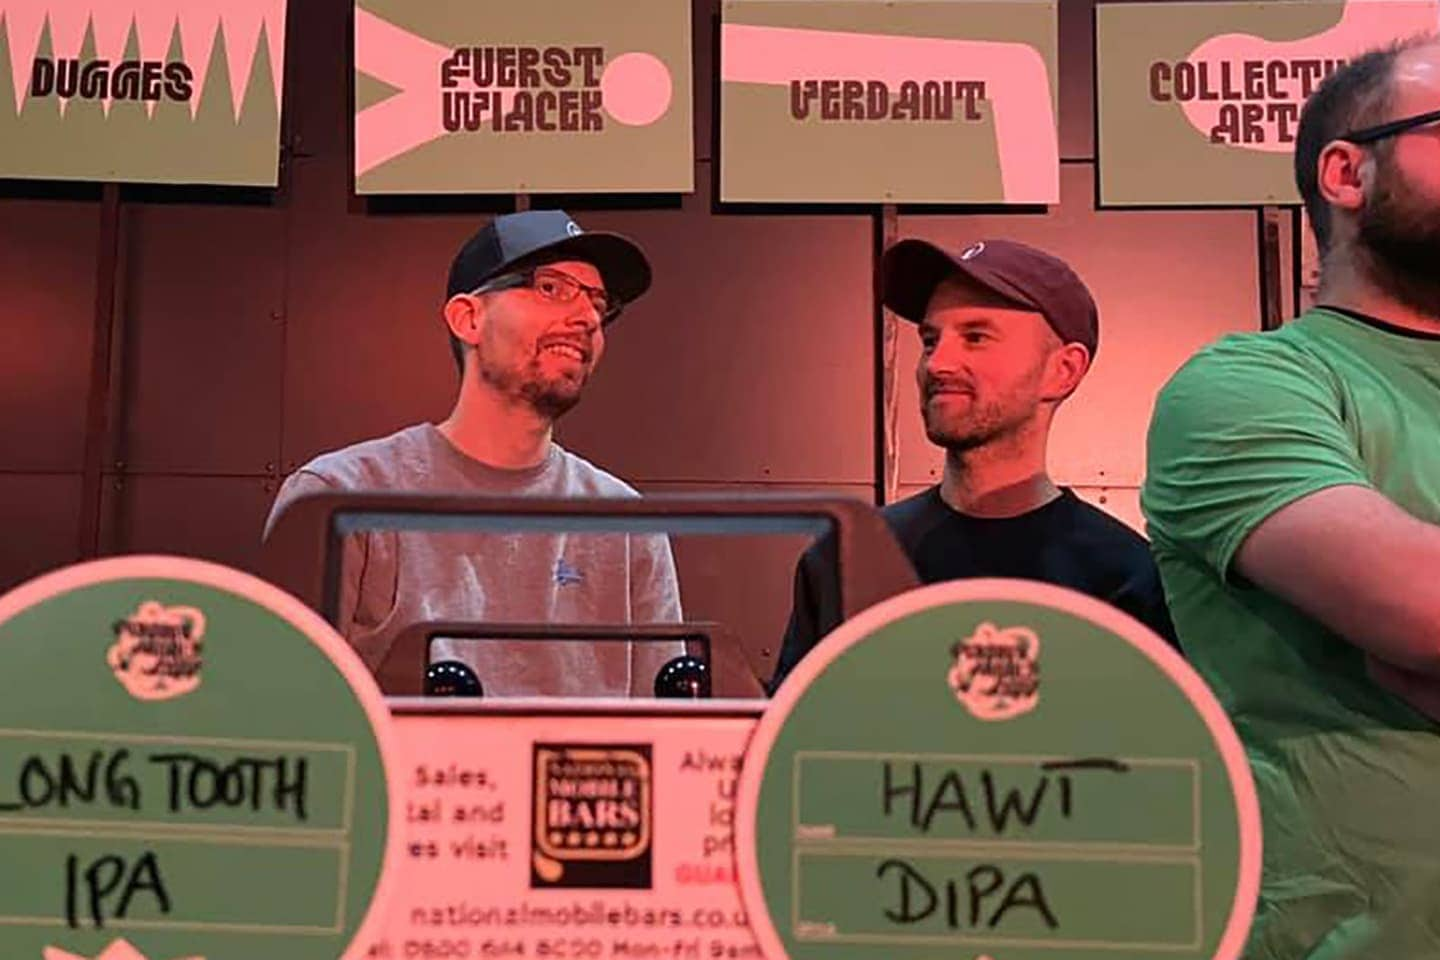 Georg and Lukasz representing FUERST WIACEK at Cloudwater's Friends, Family & Beer Festival in Manchester